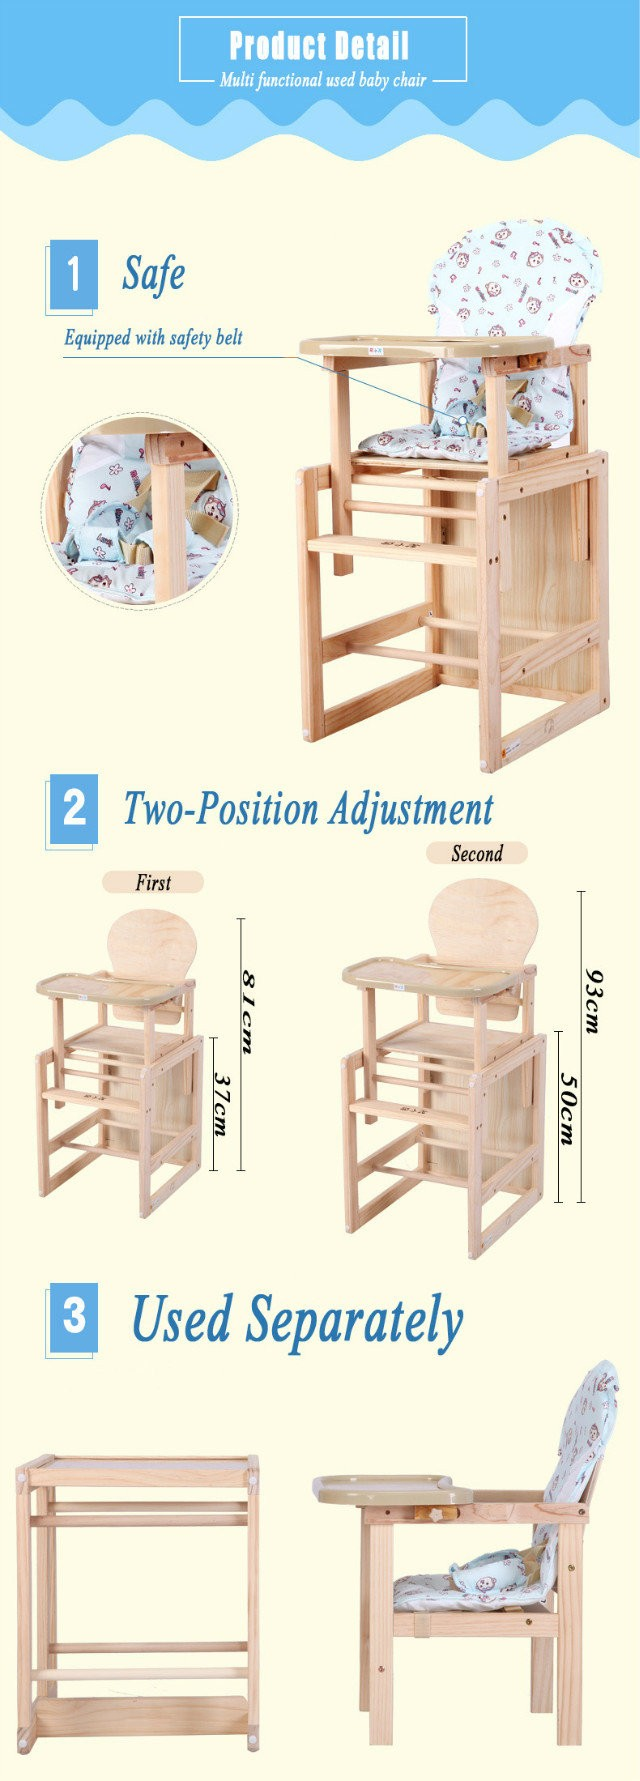 Admirable 2 In 1 Separated Baby High Chair Baby Chair Caraccident5 Cool Chair Designs And Ideas Caraccident5Info